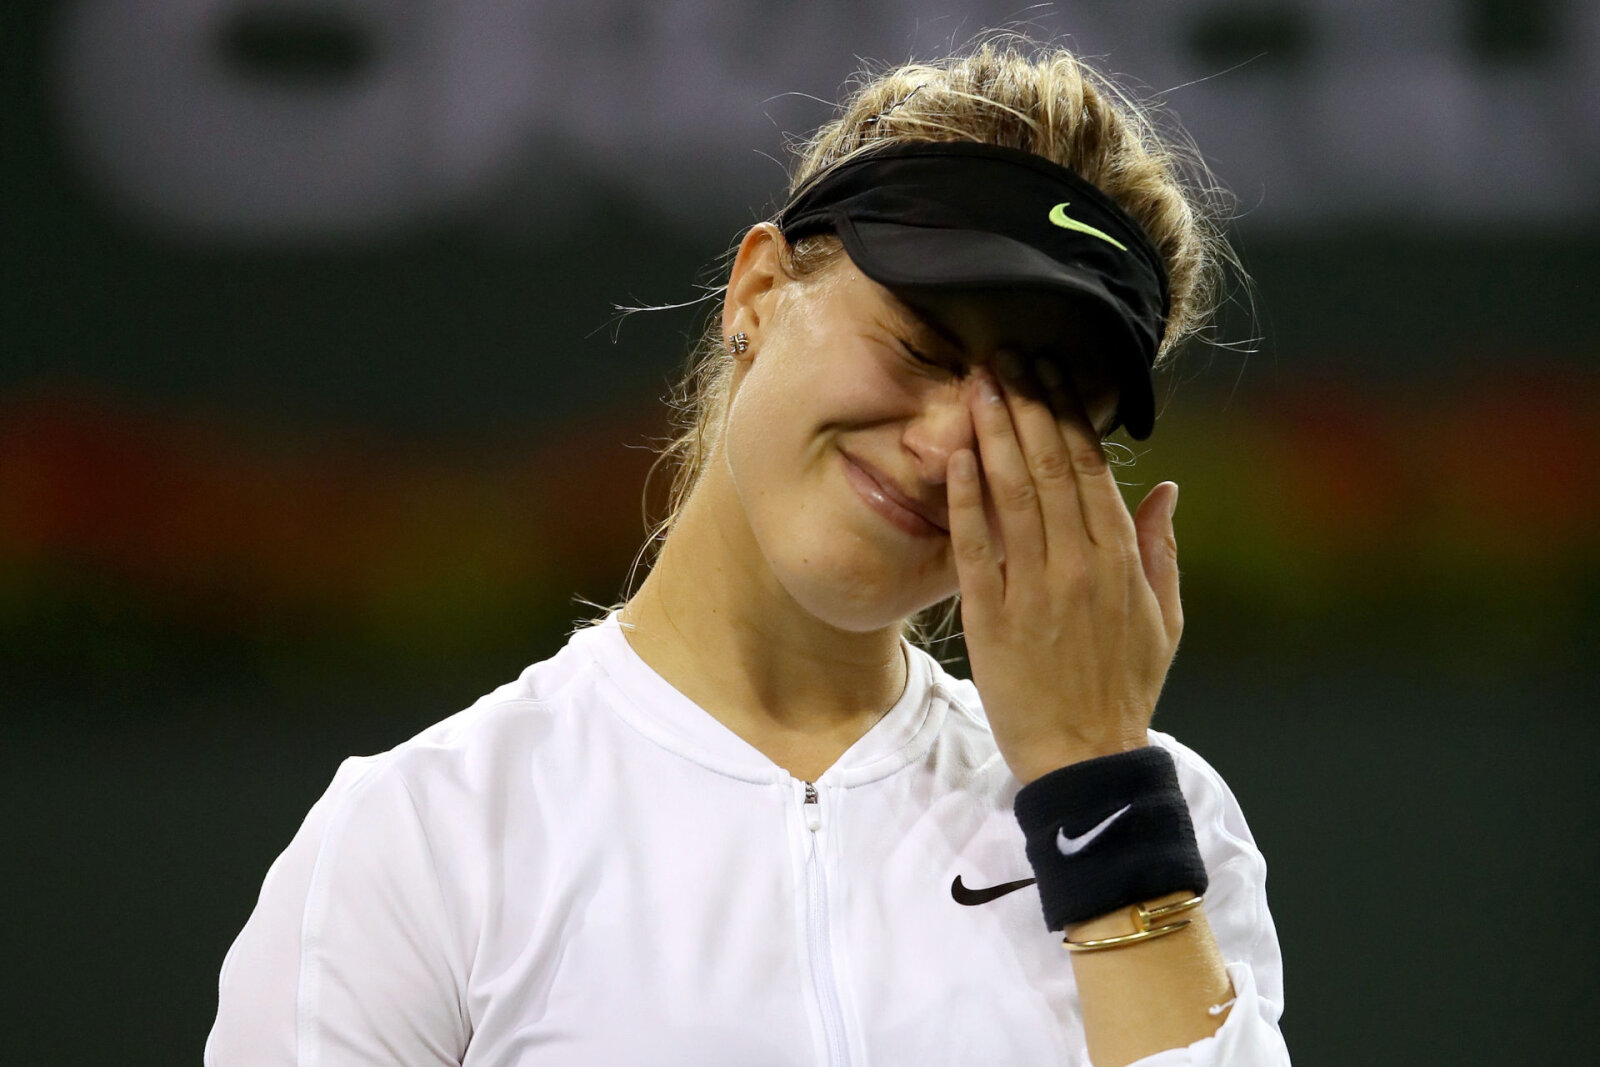 WATCH: Eugenie Bouchard Begins Her Recovery Sessions After Hand Injury